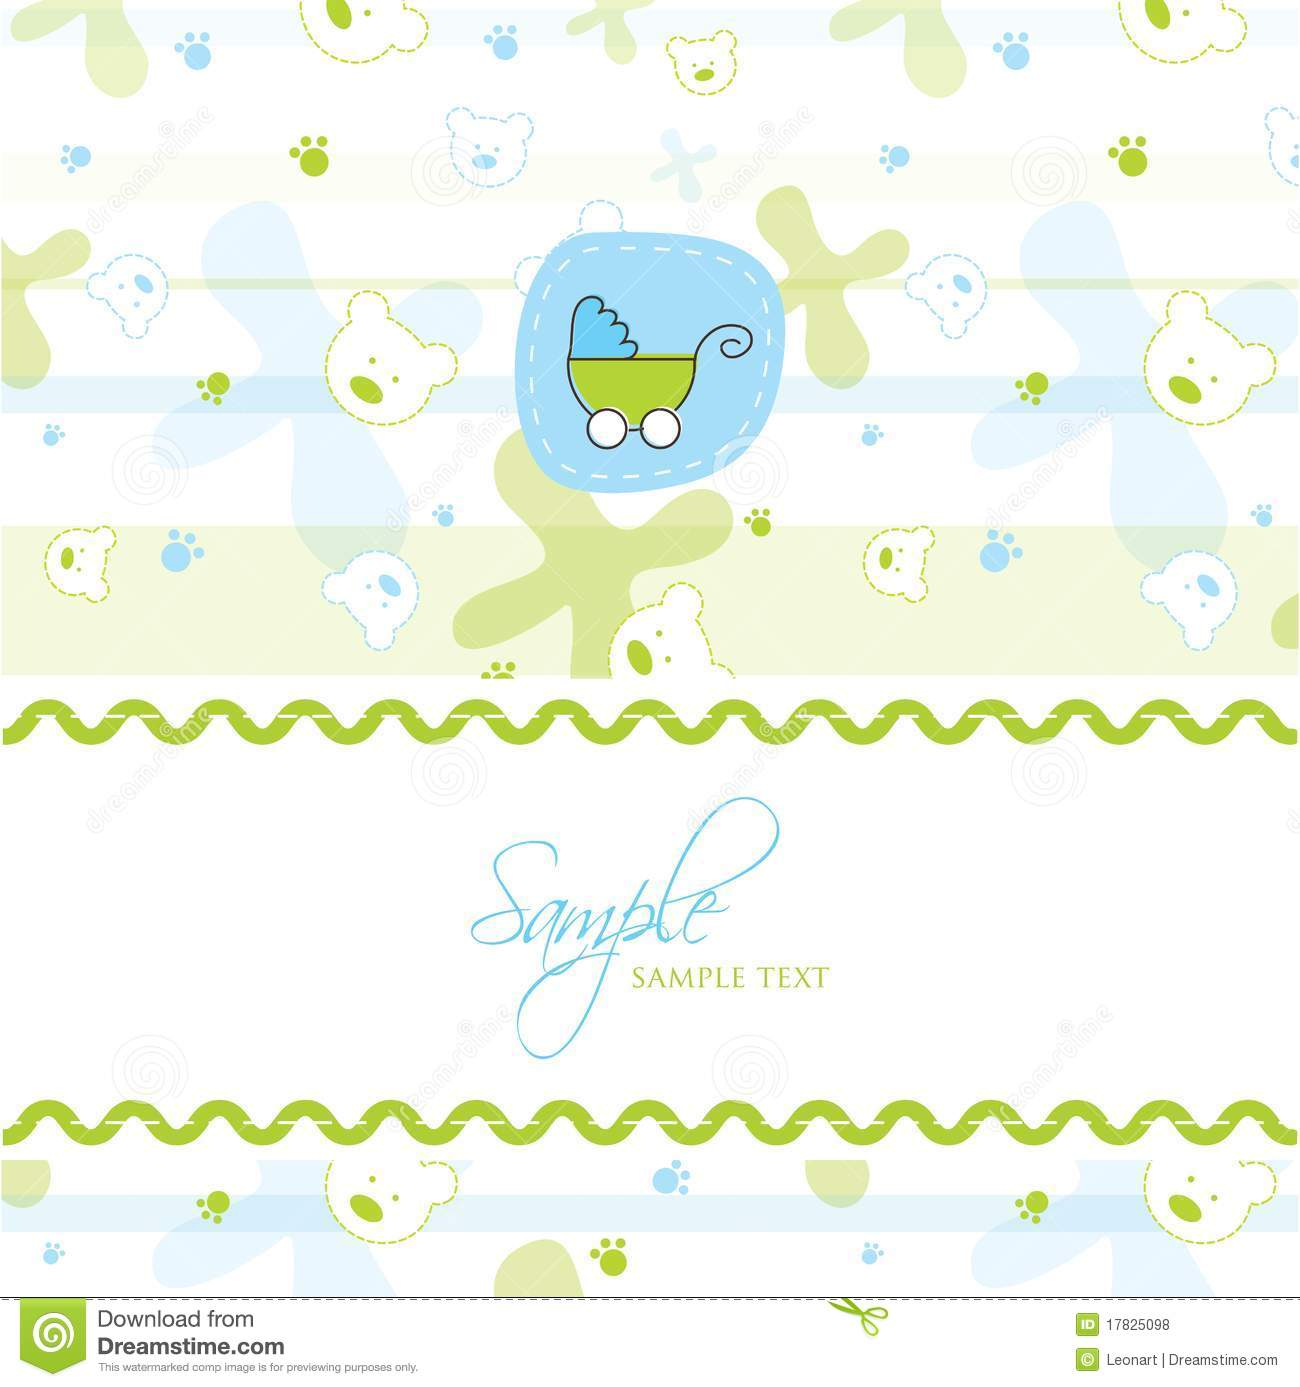 Baby Shower Card Template Royalty Free Stock Photos - Image: 17825098